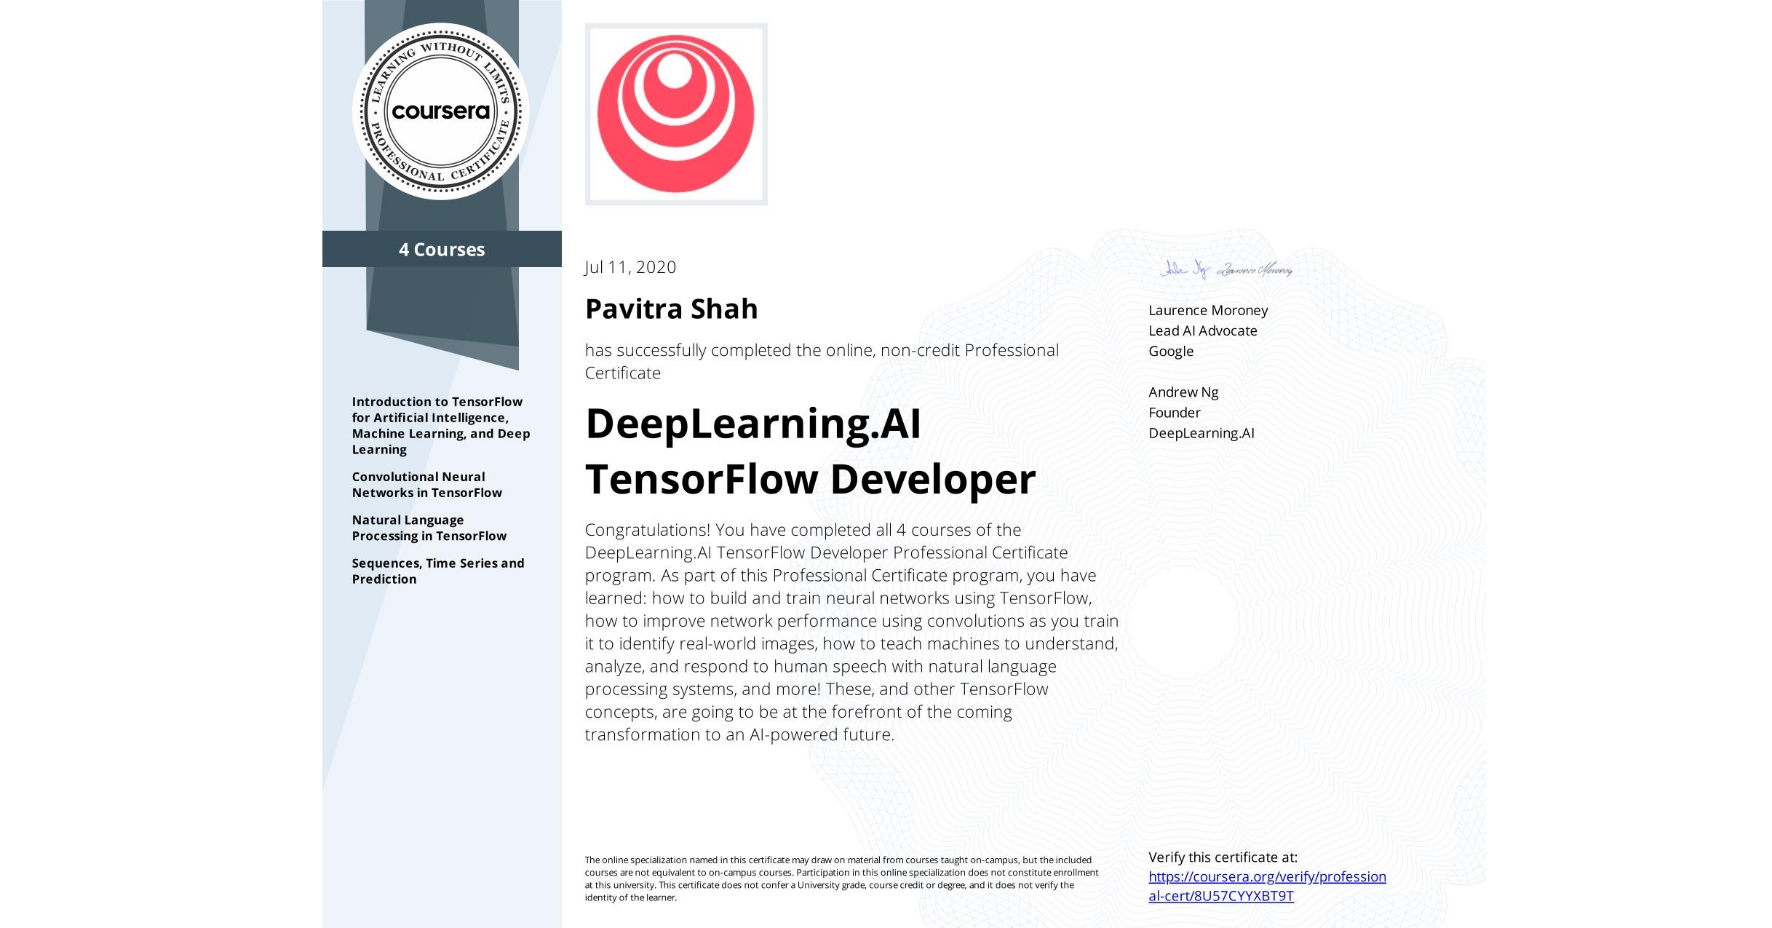 View certificate for Pavitra Shah, DeepLearning.AI TensorFlow Developer, offered through Coursera. Congratulations! You have completed all 4 courses of the DeepLearning.AI TensorFlow Developer Professional Certificate program.   As part of this Professional Certificate program, you have learned: how to build and train neural networks using TensorFlow, how to improve network performance using convolutions as you train it to identify real-world images, how to teach machines to understand, analyze, and respond to human speech with natural language processing systems, and more!  These, and other TensorFlow concepts, are going to be at the forefront of the coming transformation to an AI-powered future.